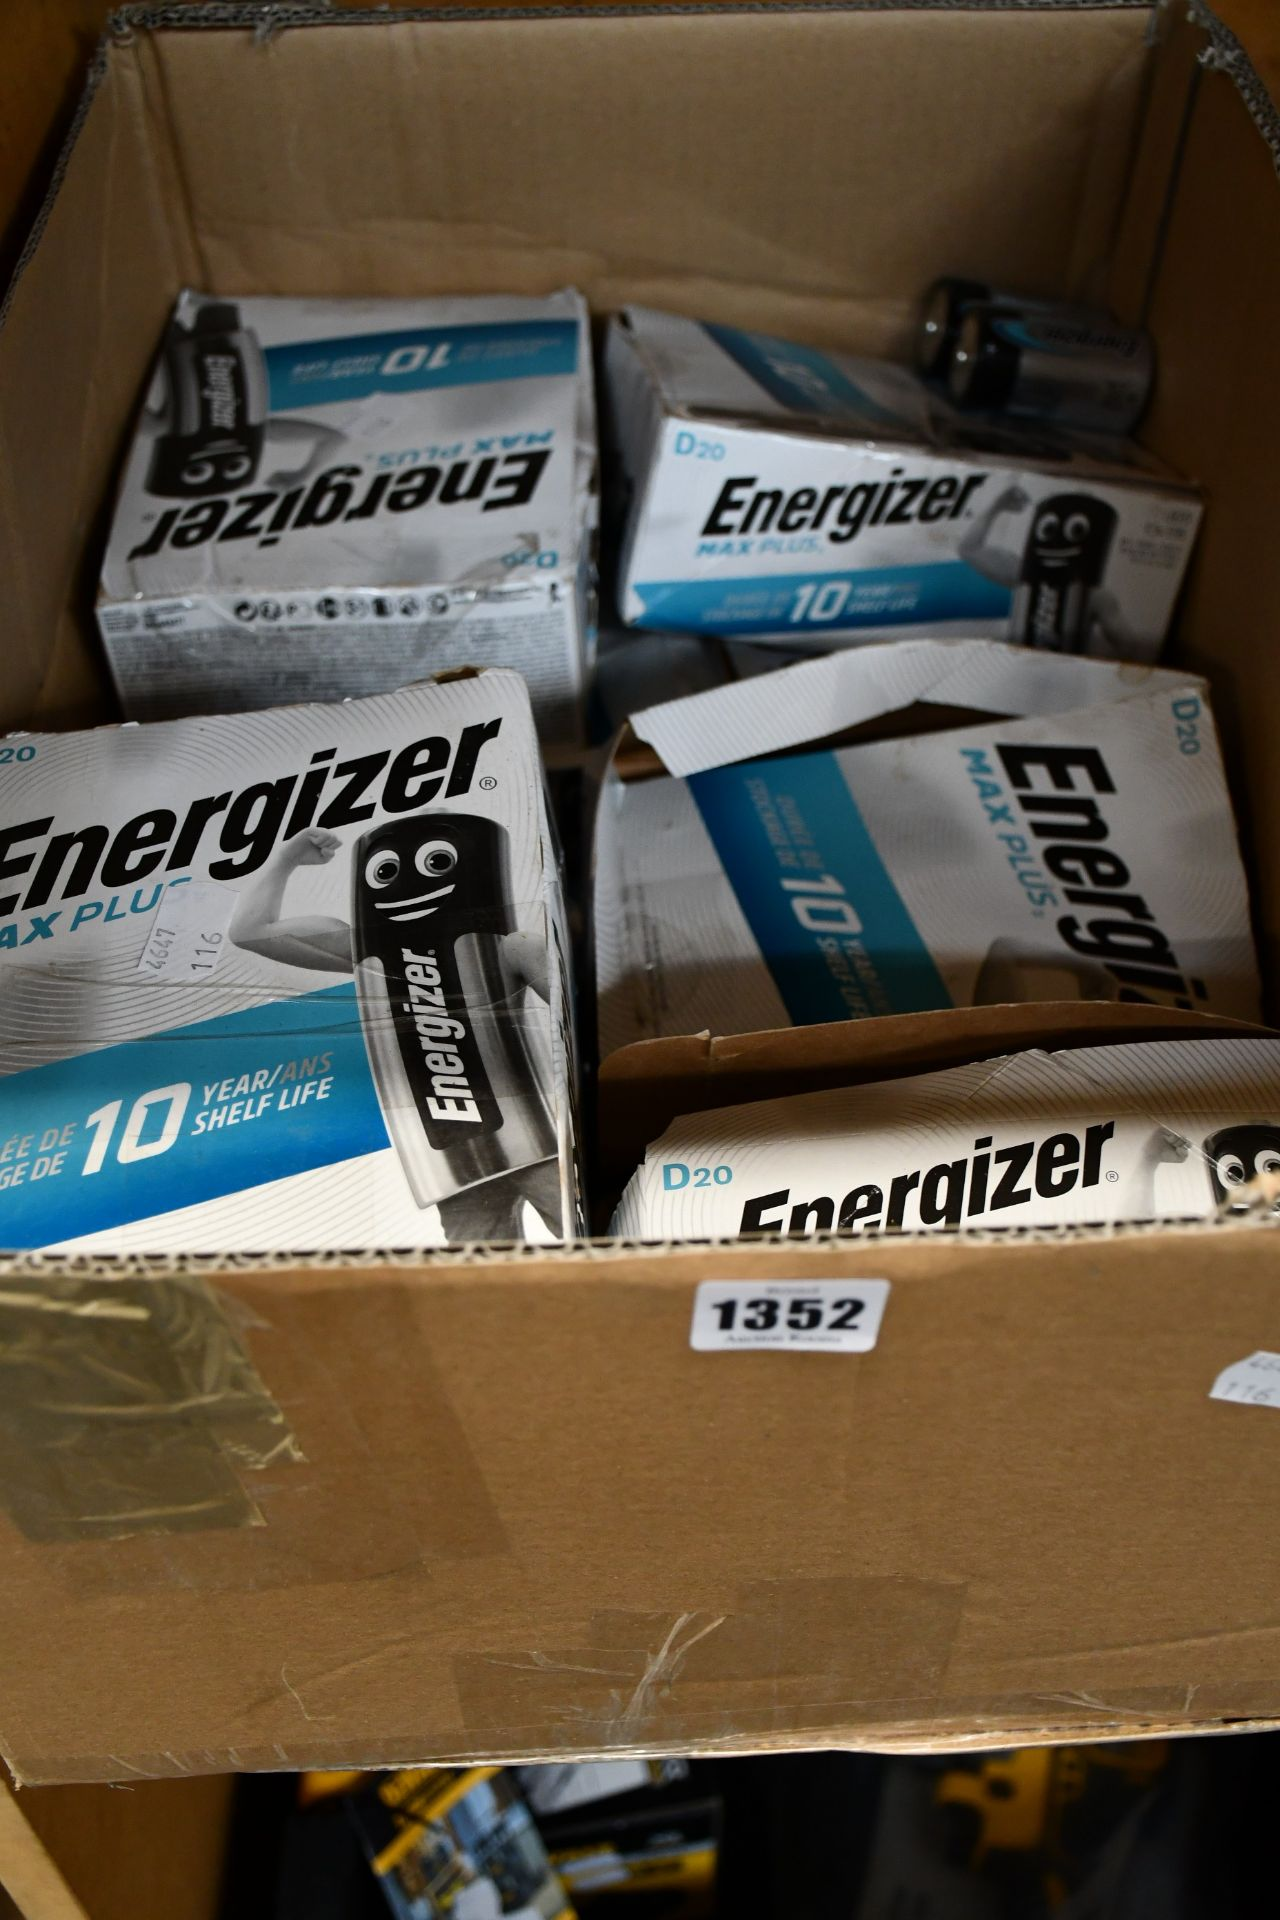 Lot 1352 - A quantity of as new Energizer Max Plus D cell 1.5v alkaline batteries (Approximately 120).